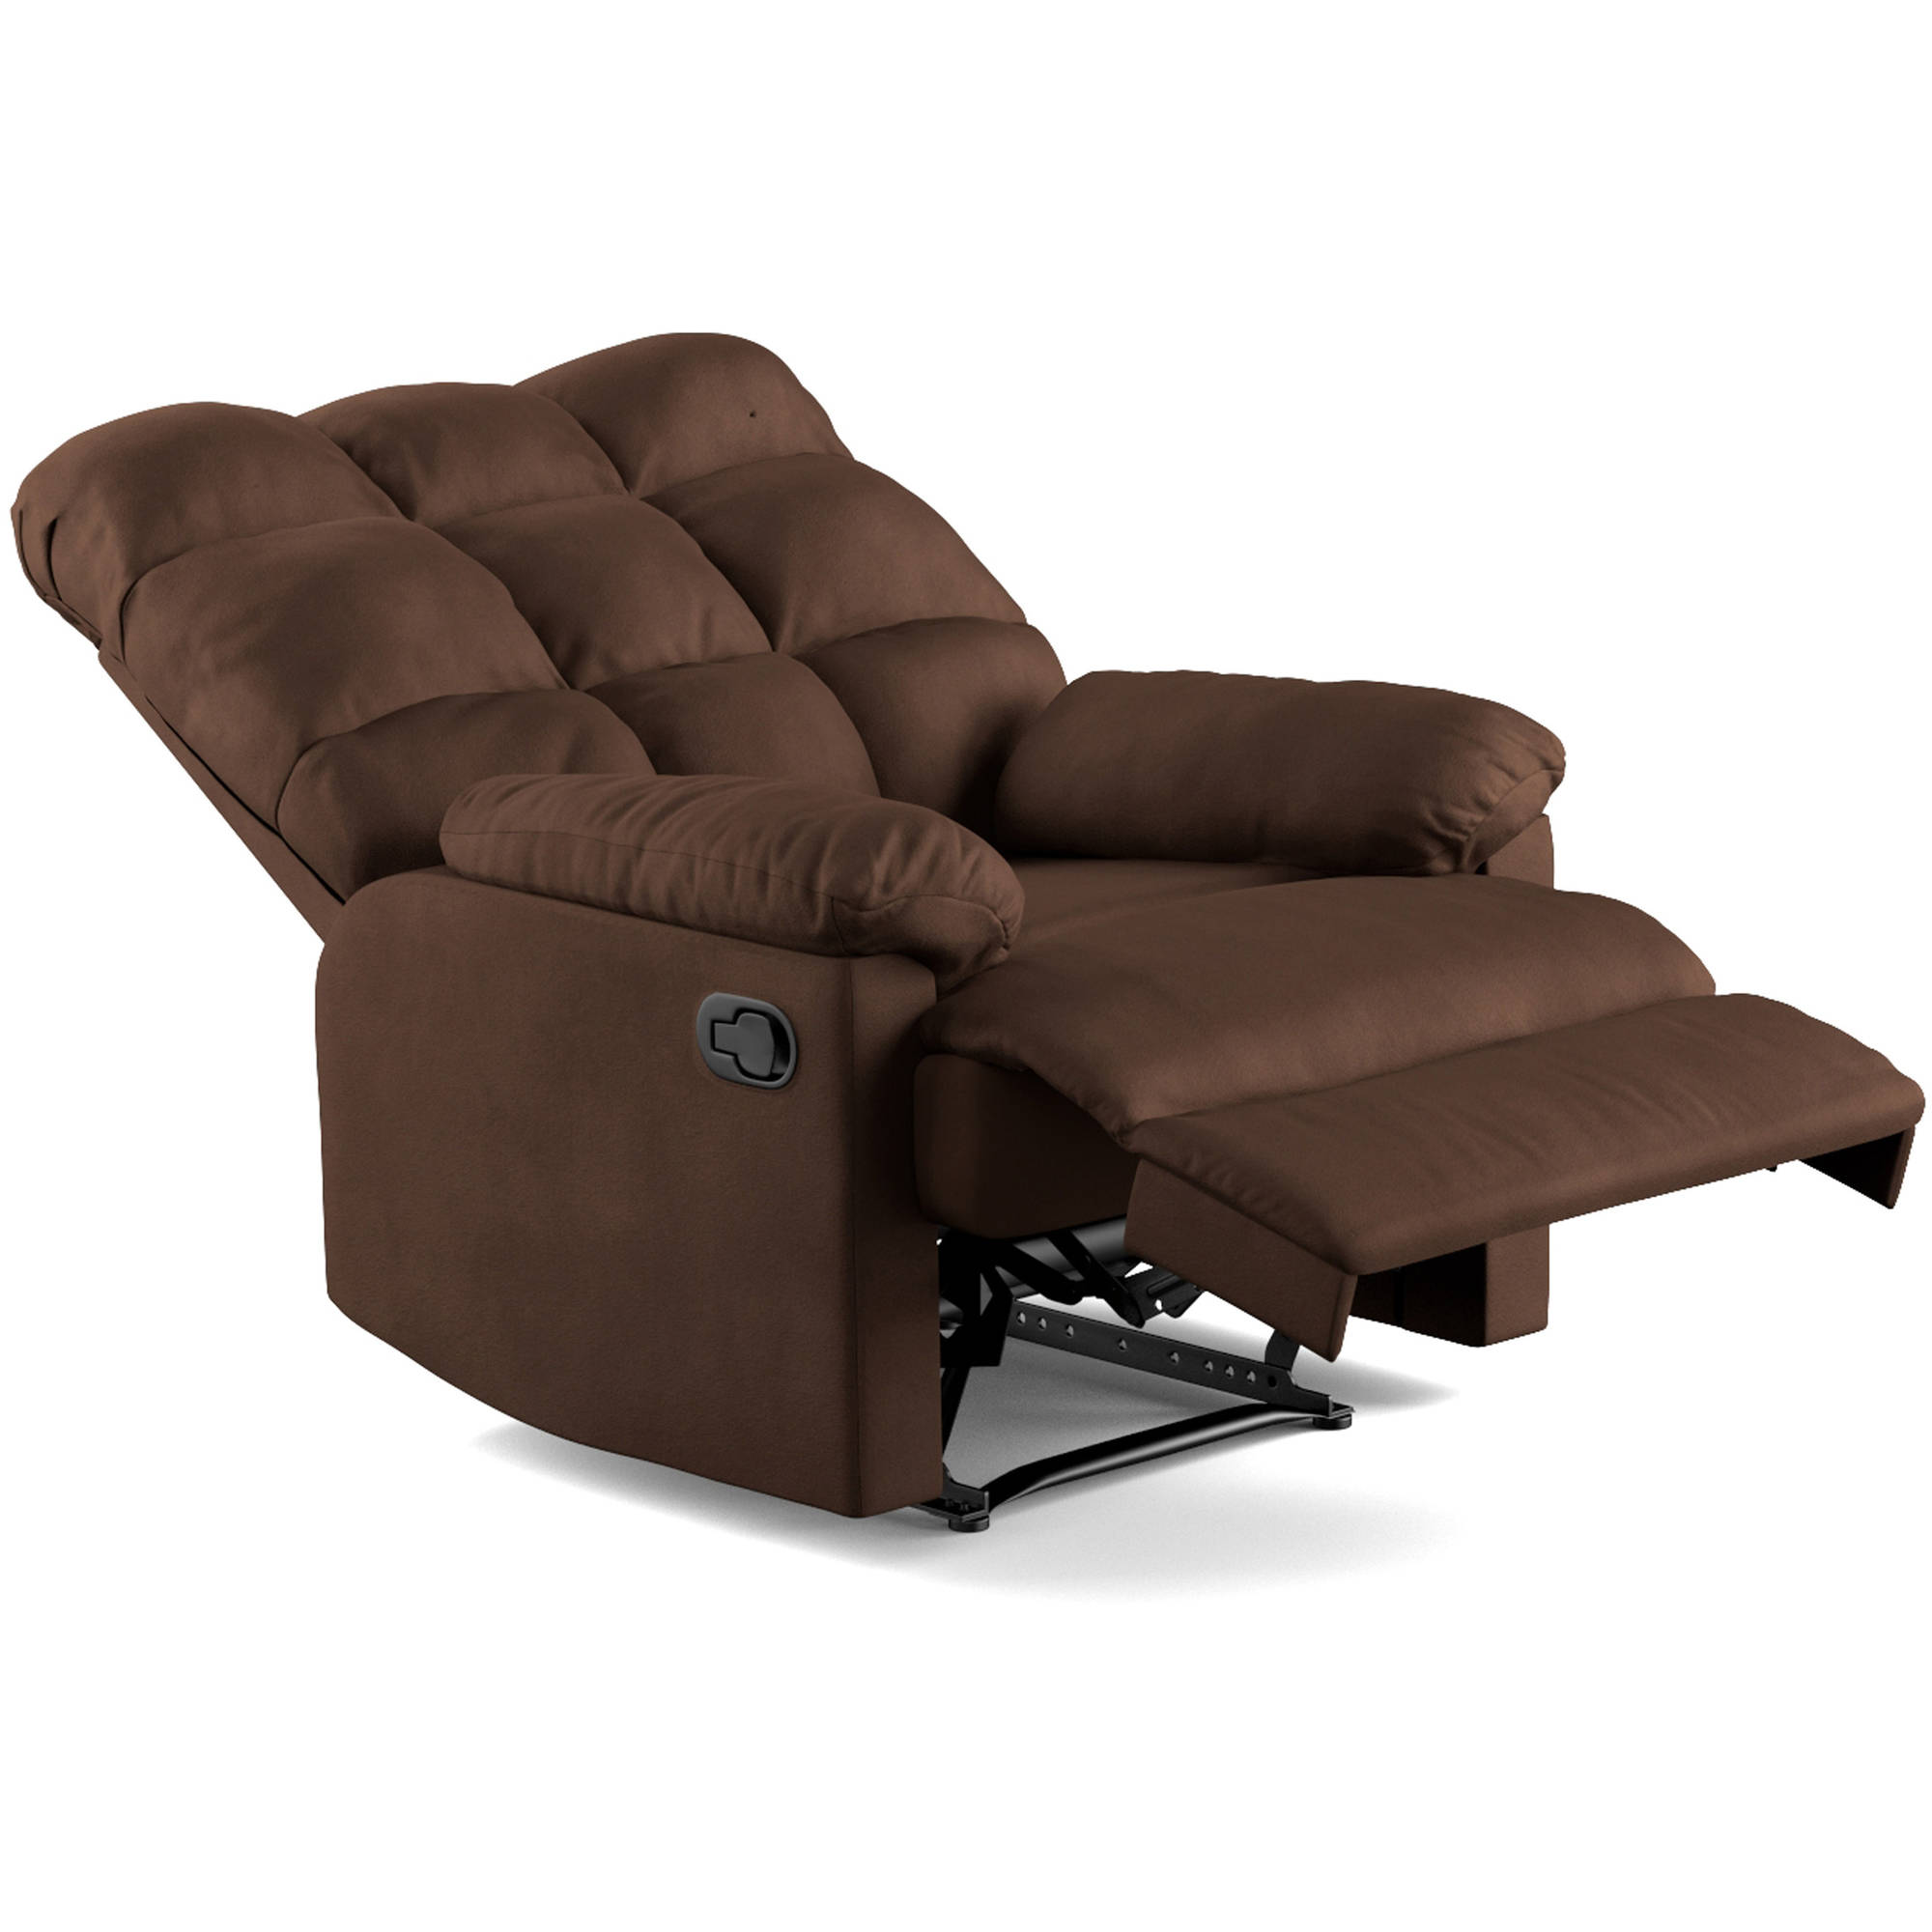 Baja Convert-a-Couch Sofa Bed with 2 Recliners Multiple Colors - Walmart.com  sc 1 st  Walmart & Baja Convert-a-Couch Sofa Bed with 2 Recliners Multiple Colors ... islam-shia.org